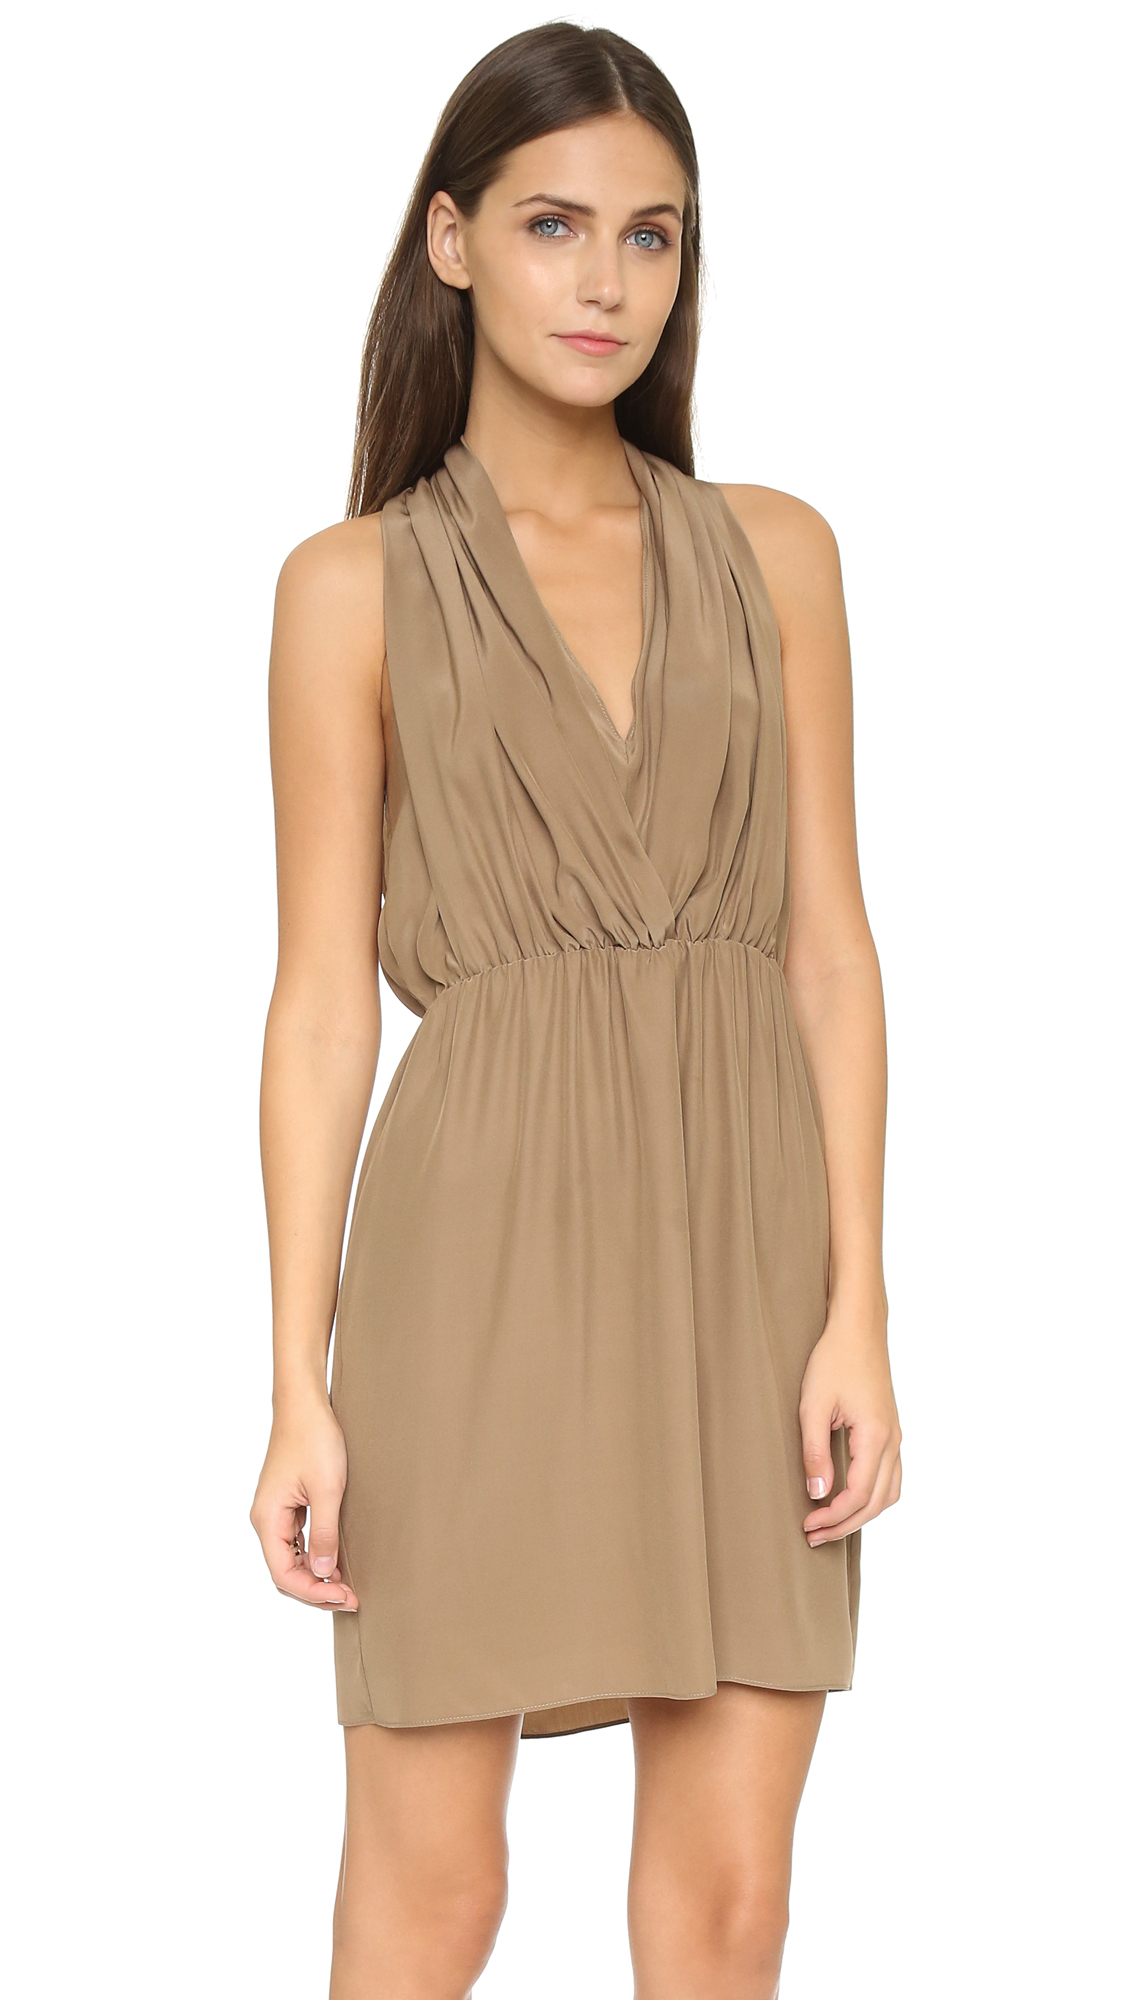 6d6fe337bb5 Lyst - Amanda Uprichard Ginger Dress - Taupe in Brown